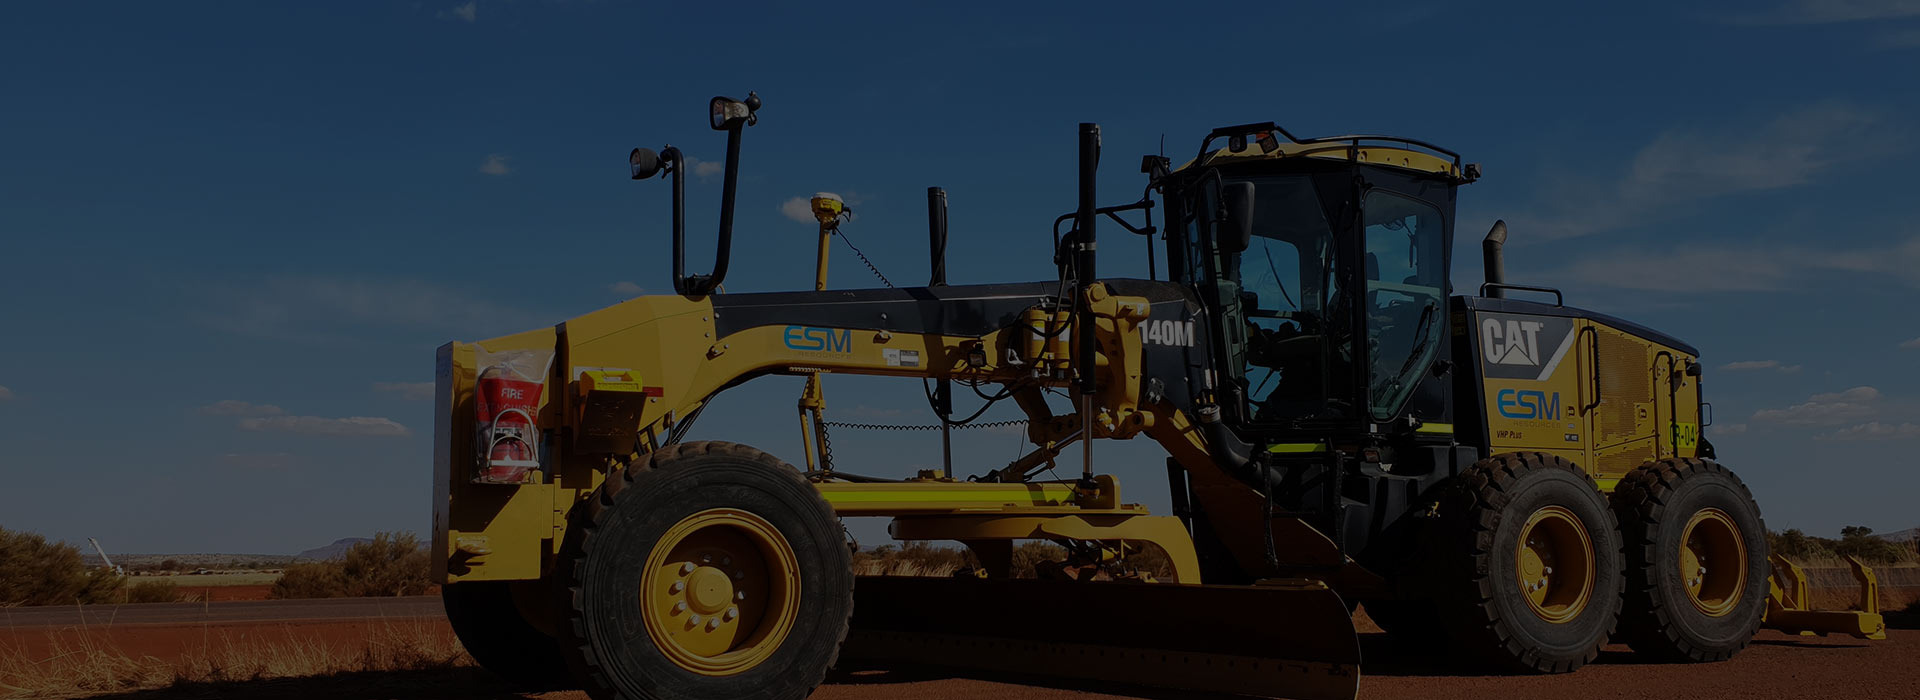 Graider plant hire equipment available for hire in Perth and the Pilbara.